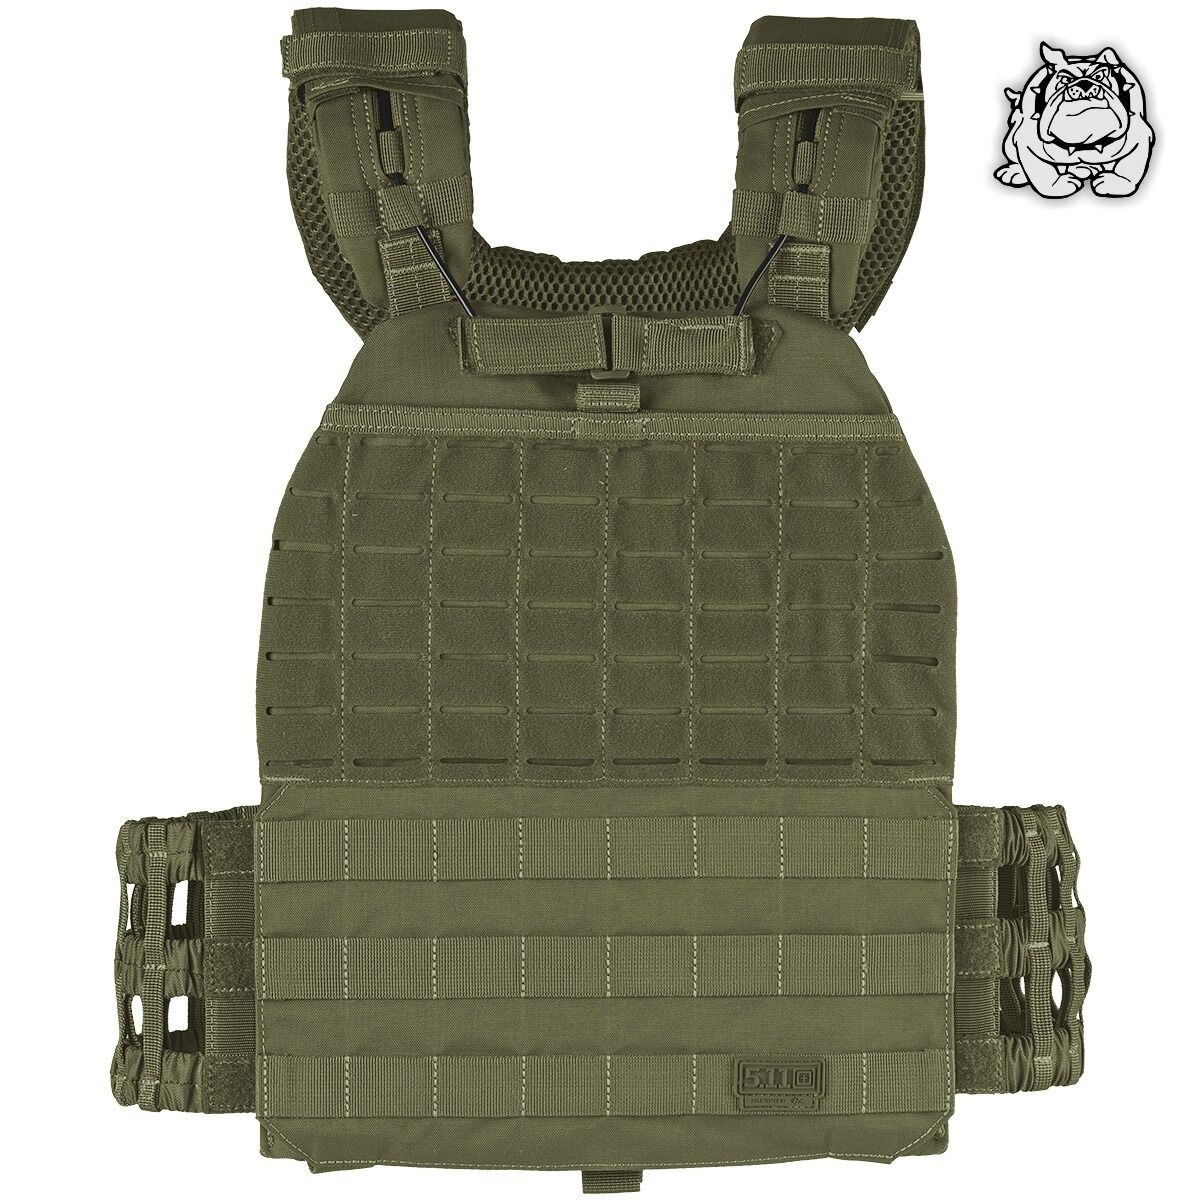 5.11 TACTICAL TACTEC™ PLATE CARRIER 56100   TAC OD 188  NEW